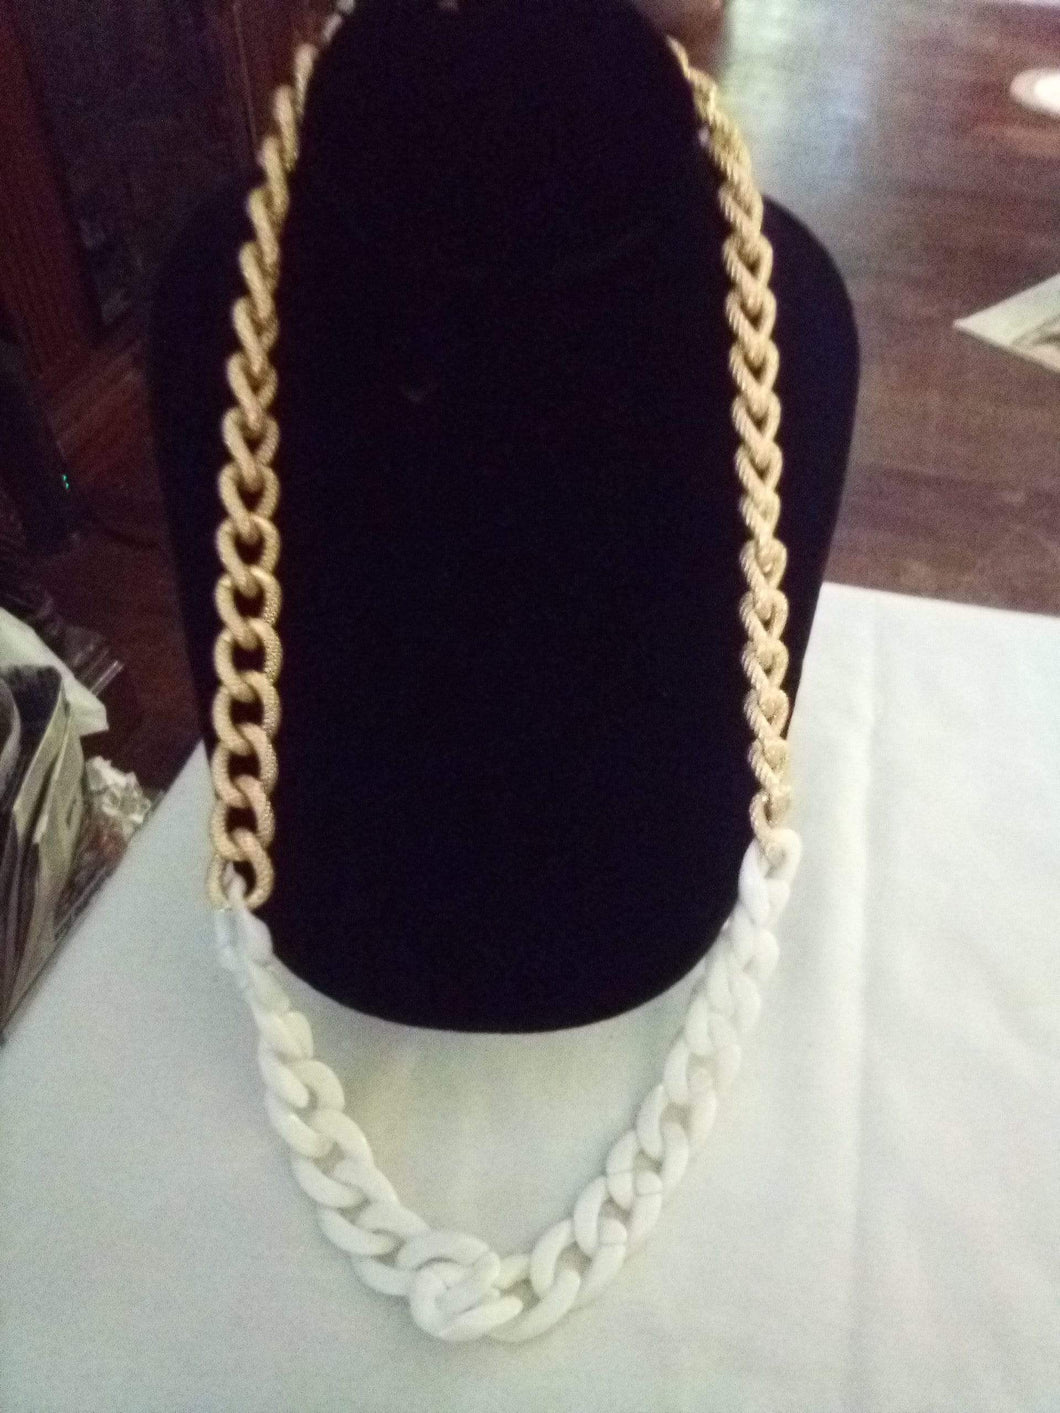 Casual long necklace - B&P'sringsnthings